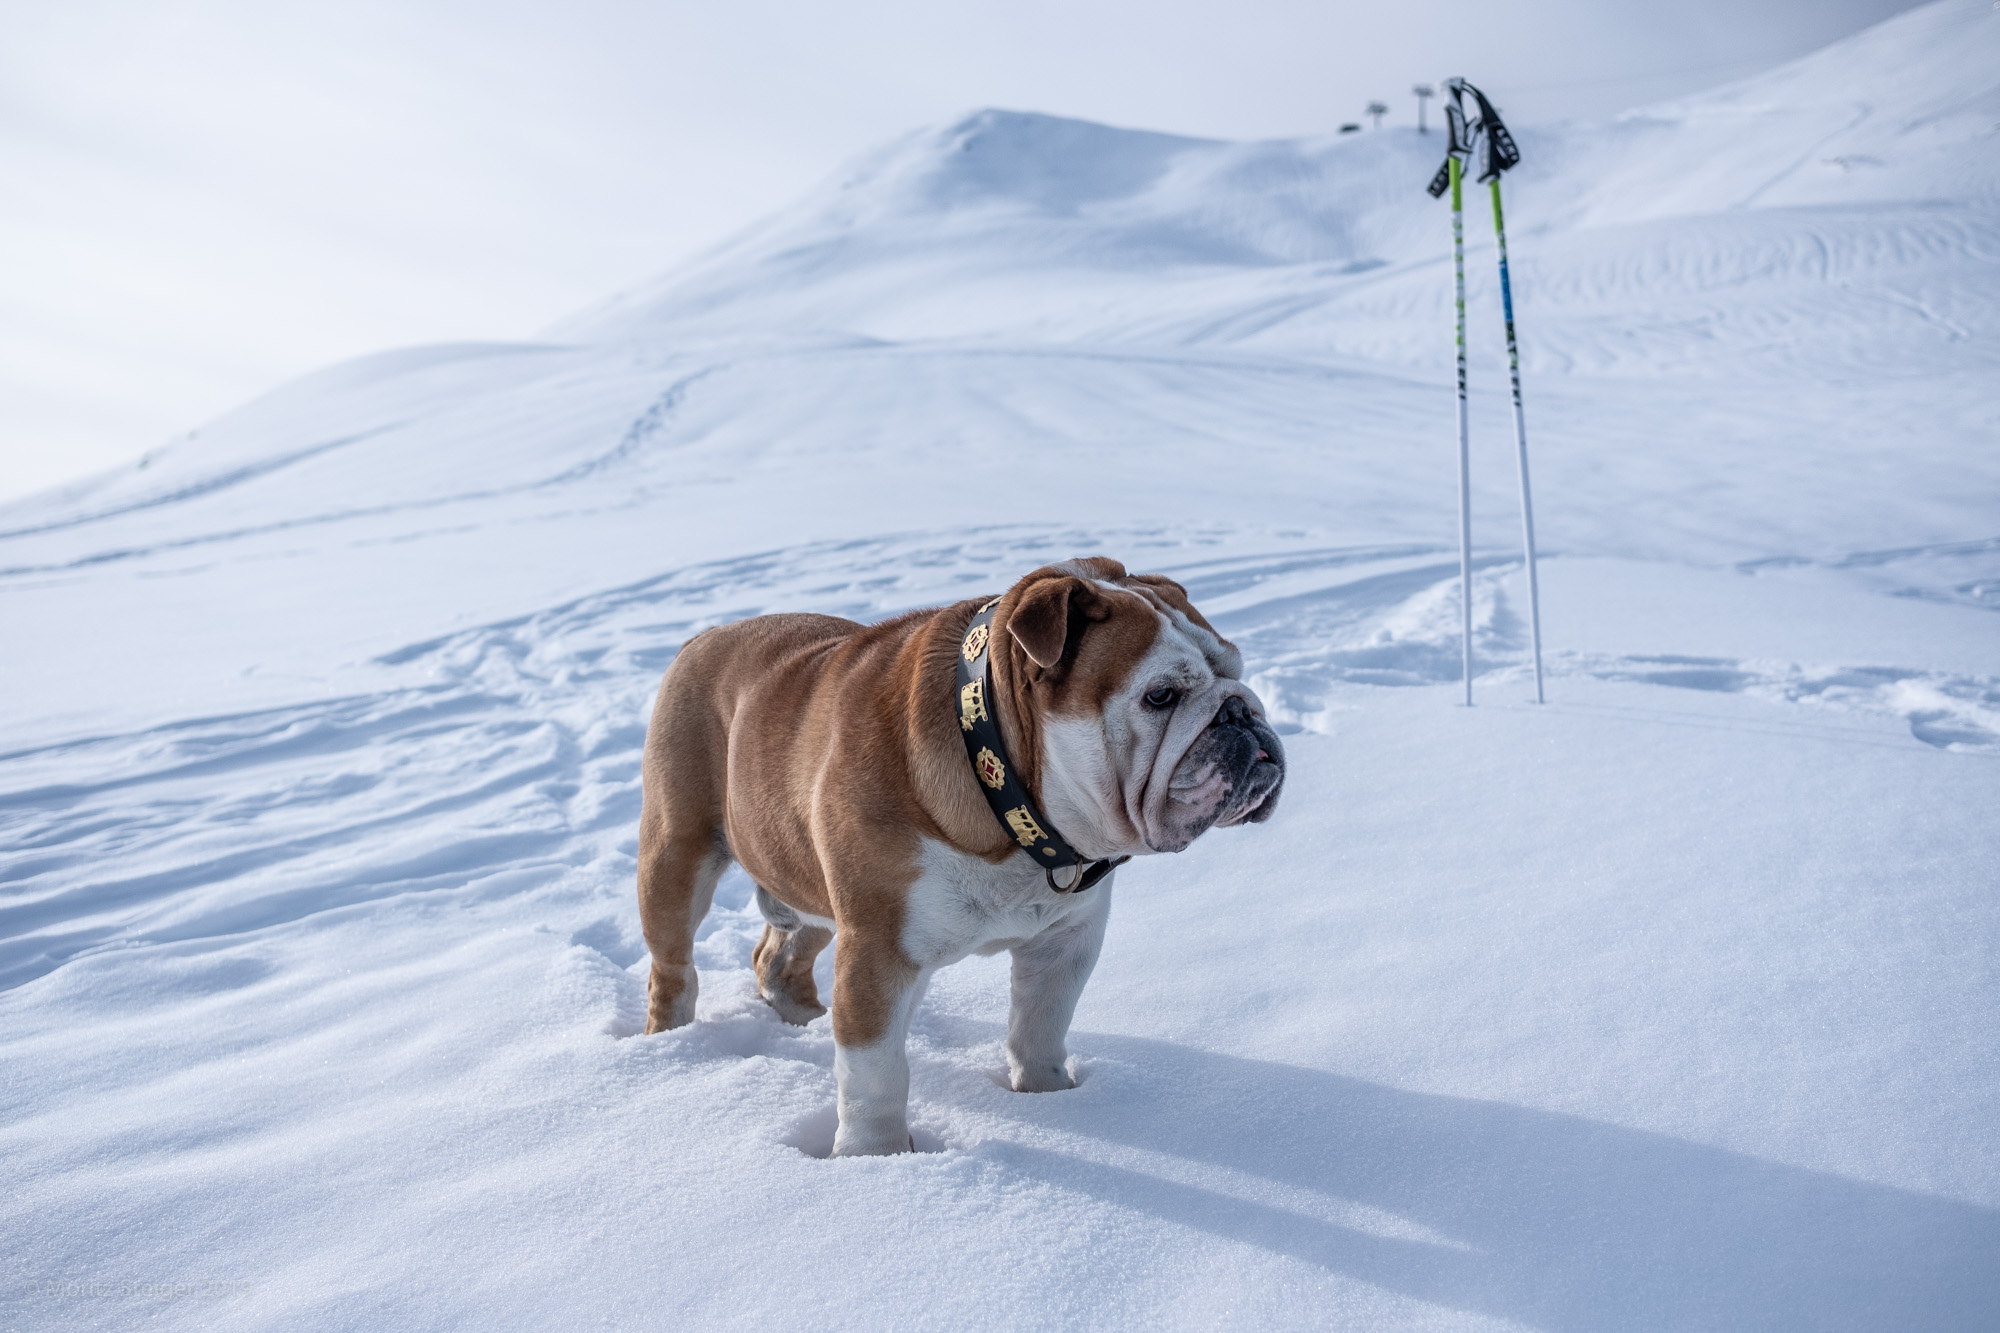 """Where are my ski poles?"" Rudy in snow covered mountains, Switzerland"